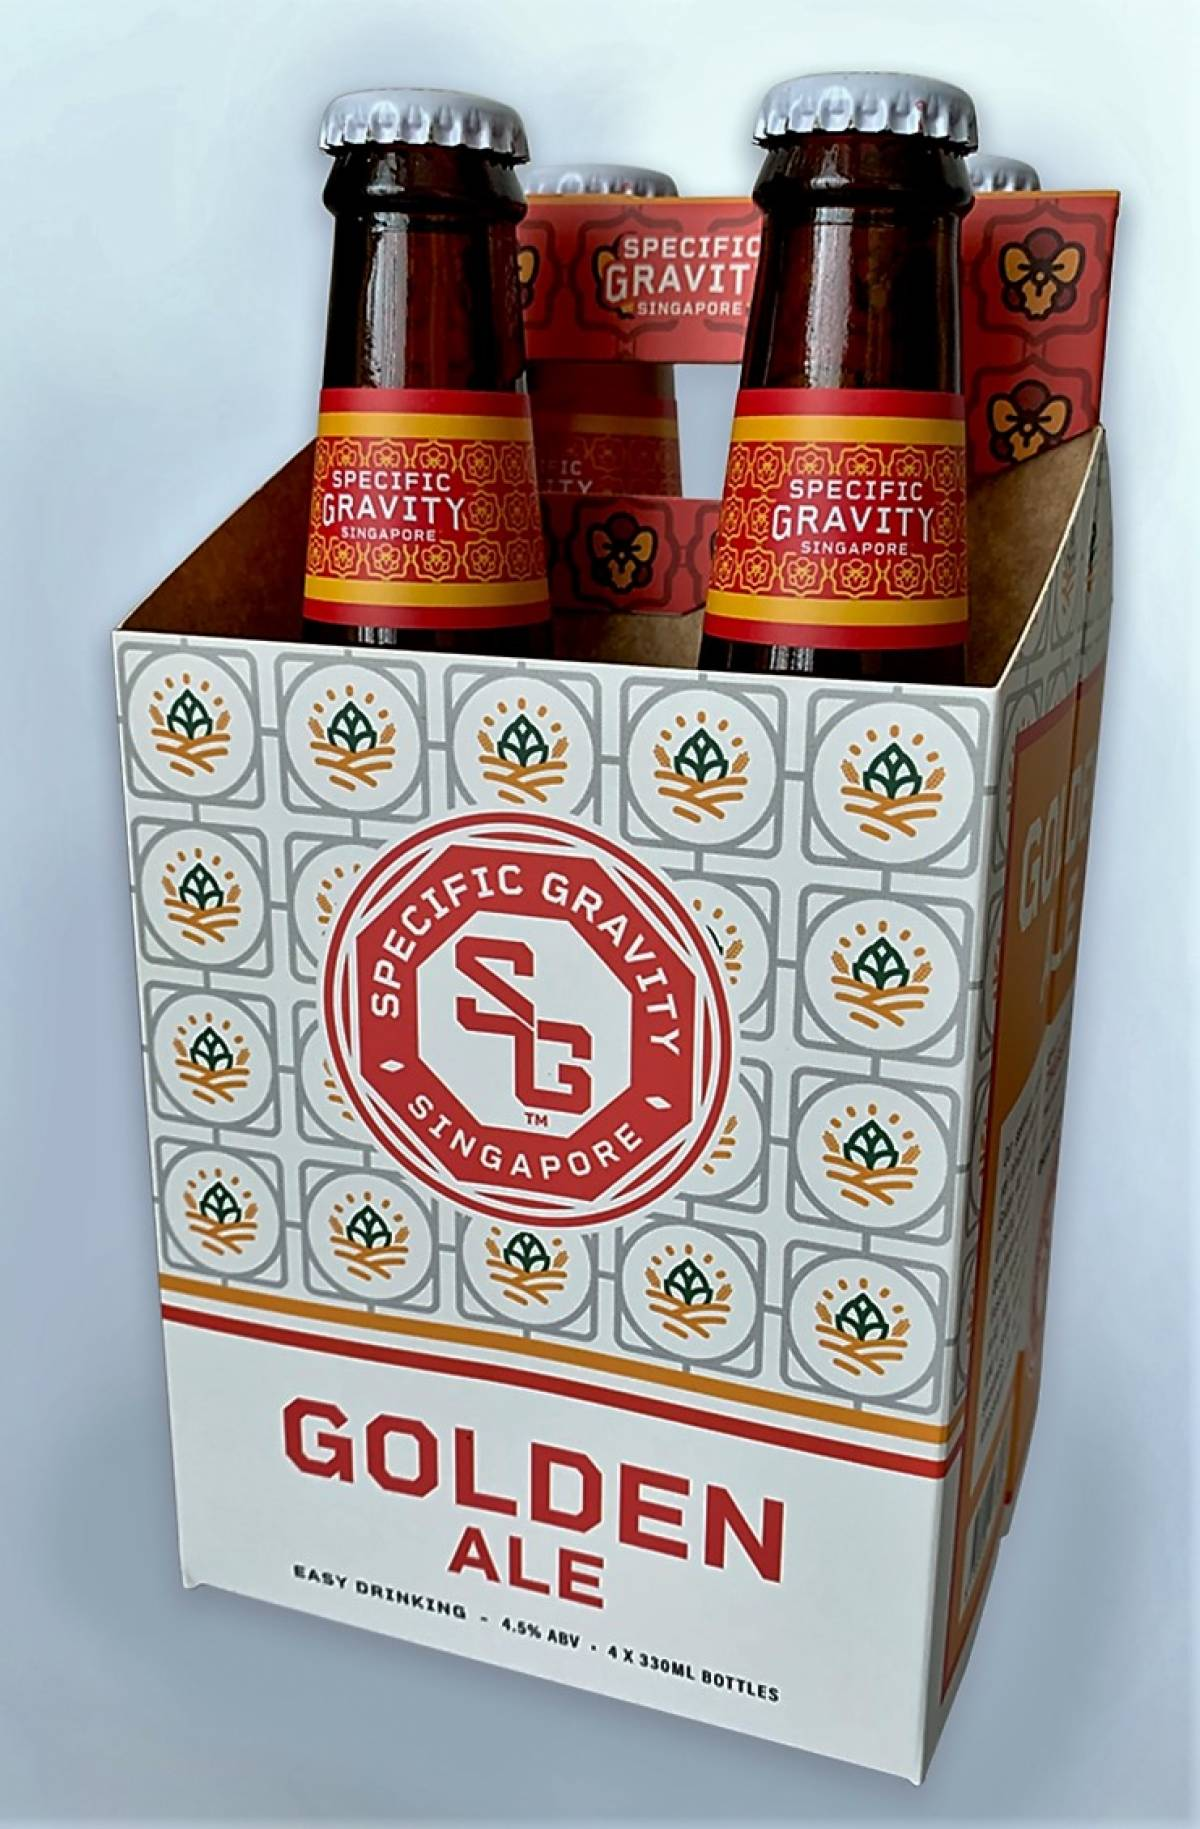 Specific Gravity Beverage Co. Wins International Acclaim at World's Biggest Beer Awards